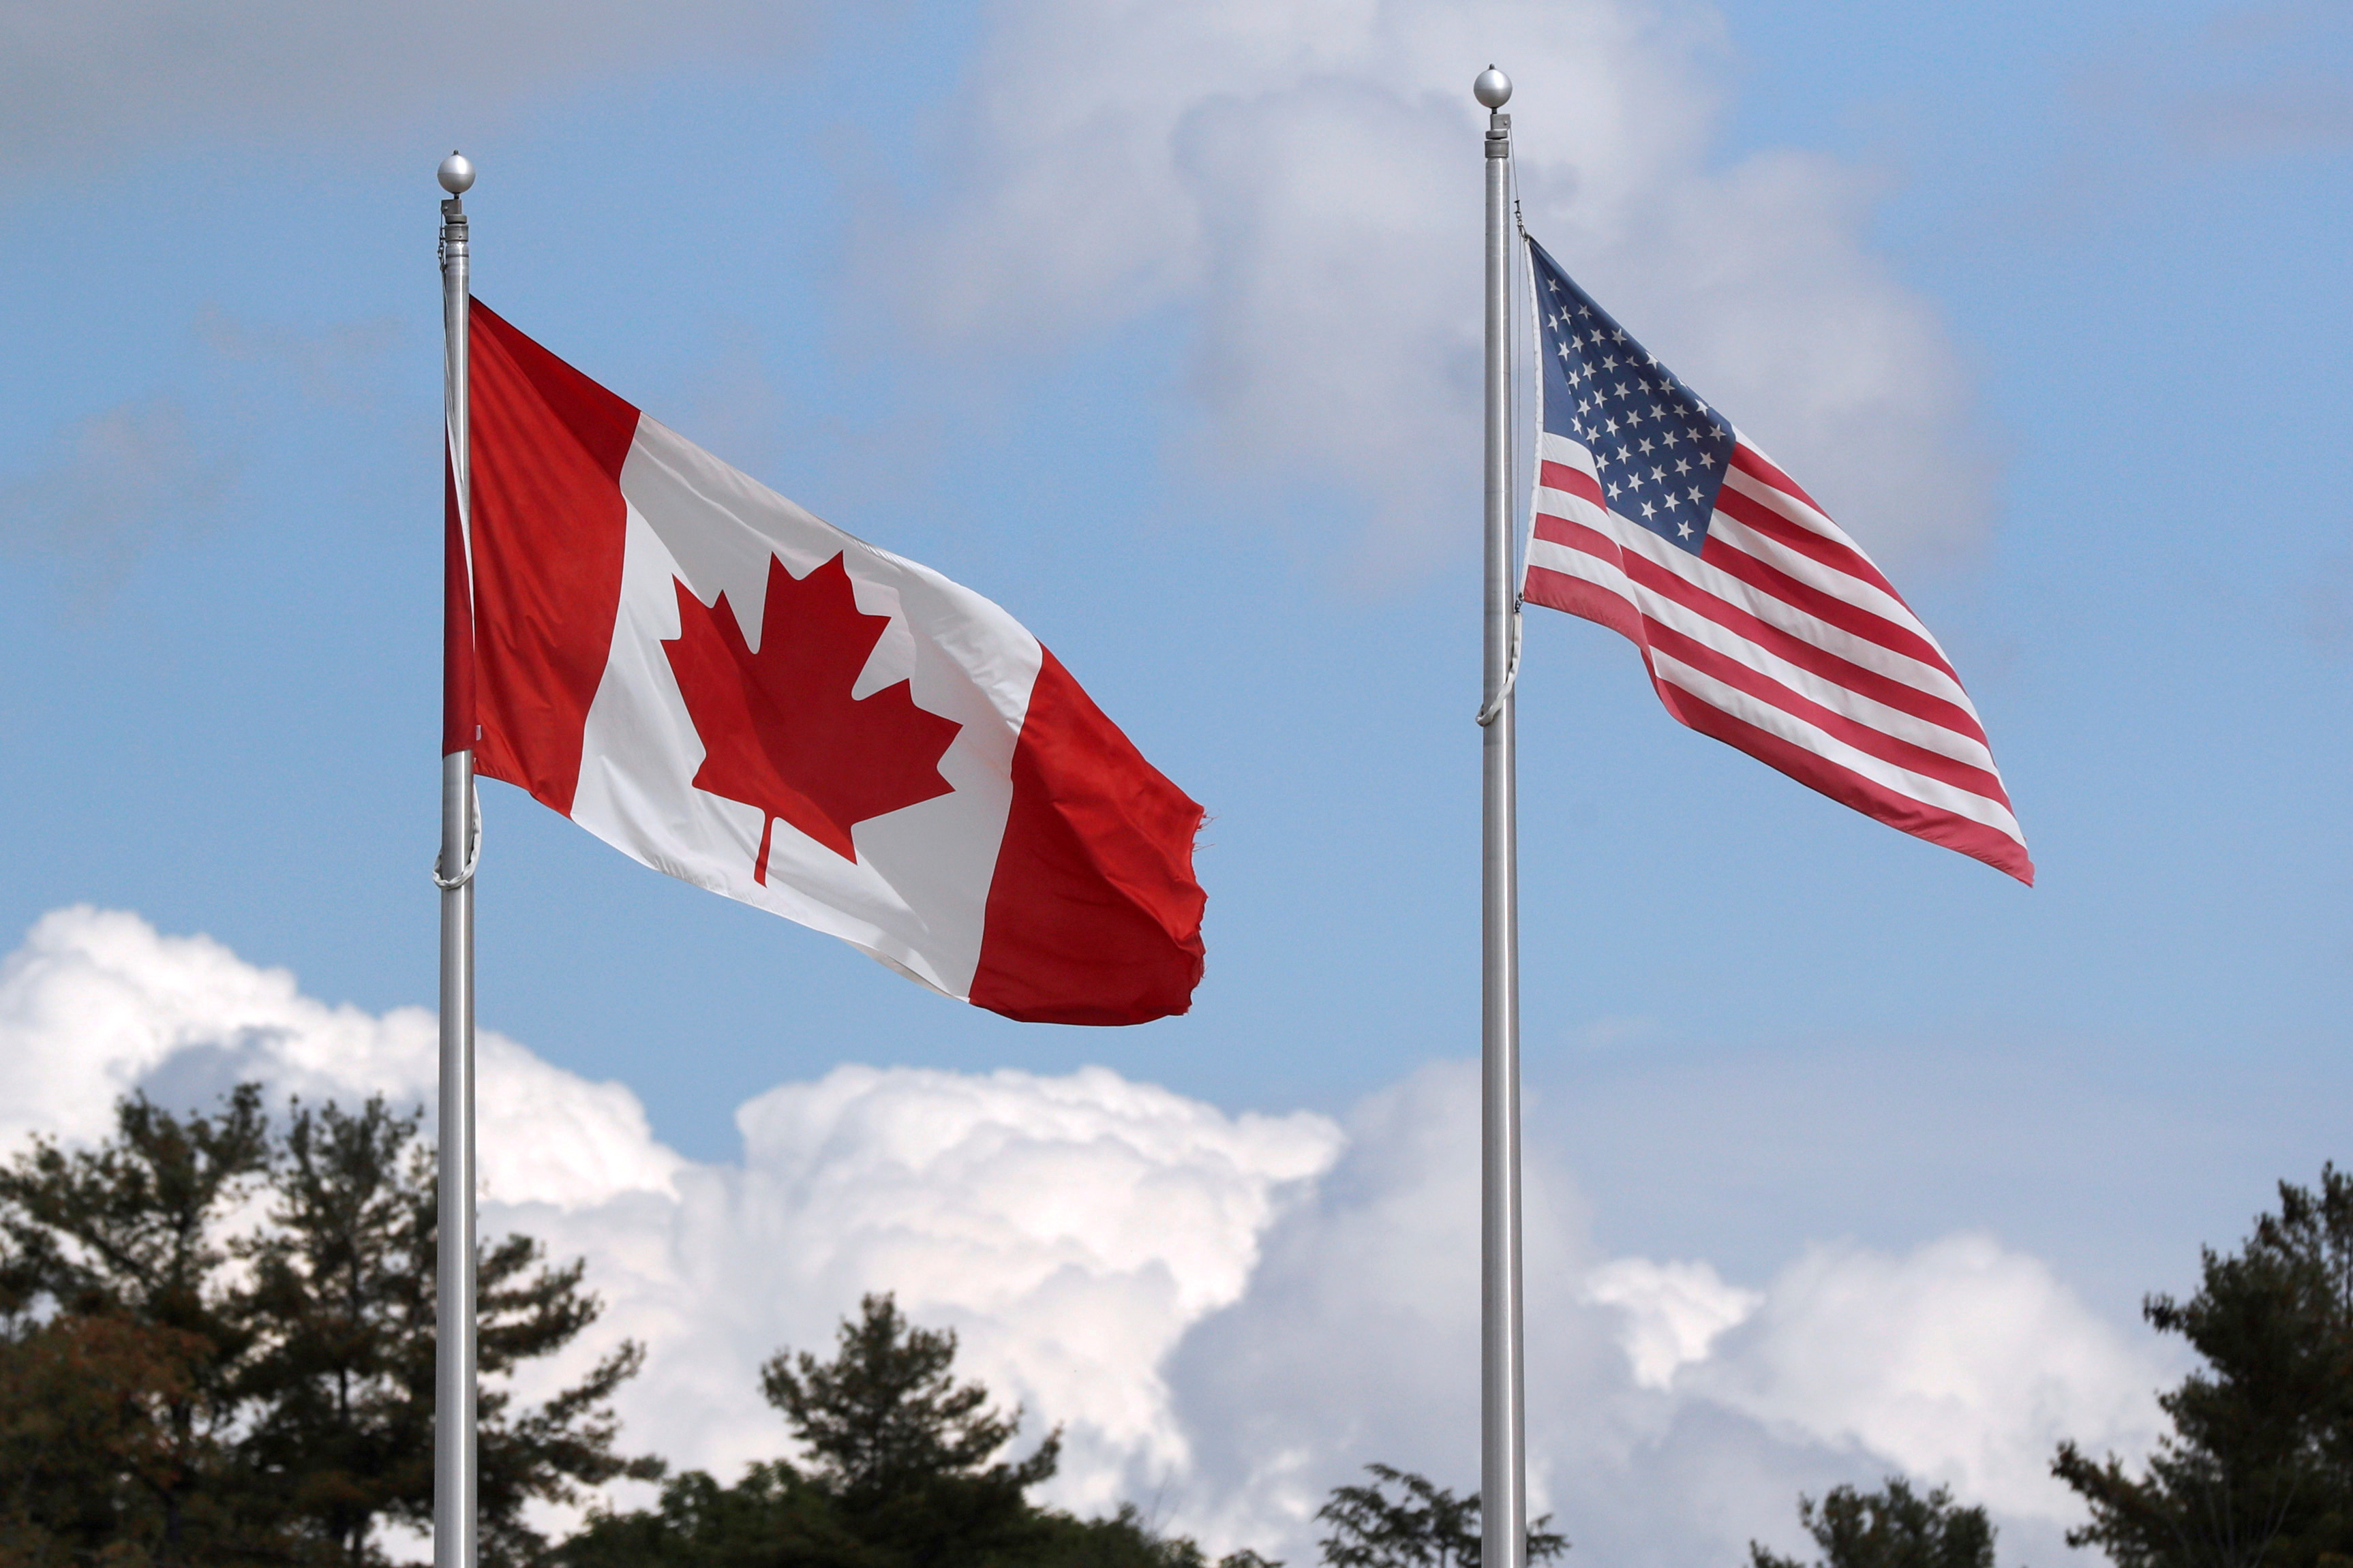 A U.S. and a Canadian flag flutter at the Canada-United States border crossing at the Thousand Islands Bridge, which remains closed to non-essential traffic to combat the spread of the coronavirus disease (COVID-19) in Lansdowne, Ontario, Canada September 28, 2020.  REUTERS/Lars Hagberg/File Photo